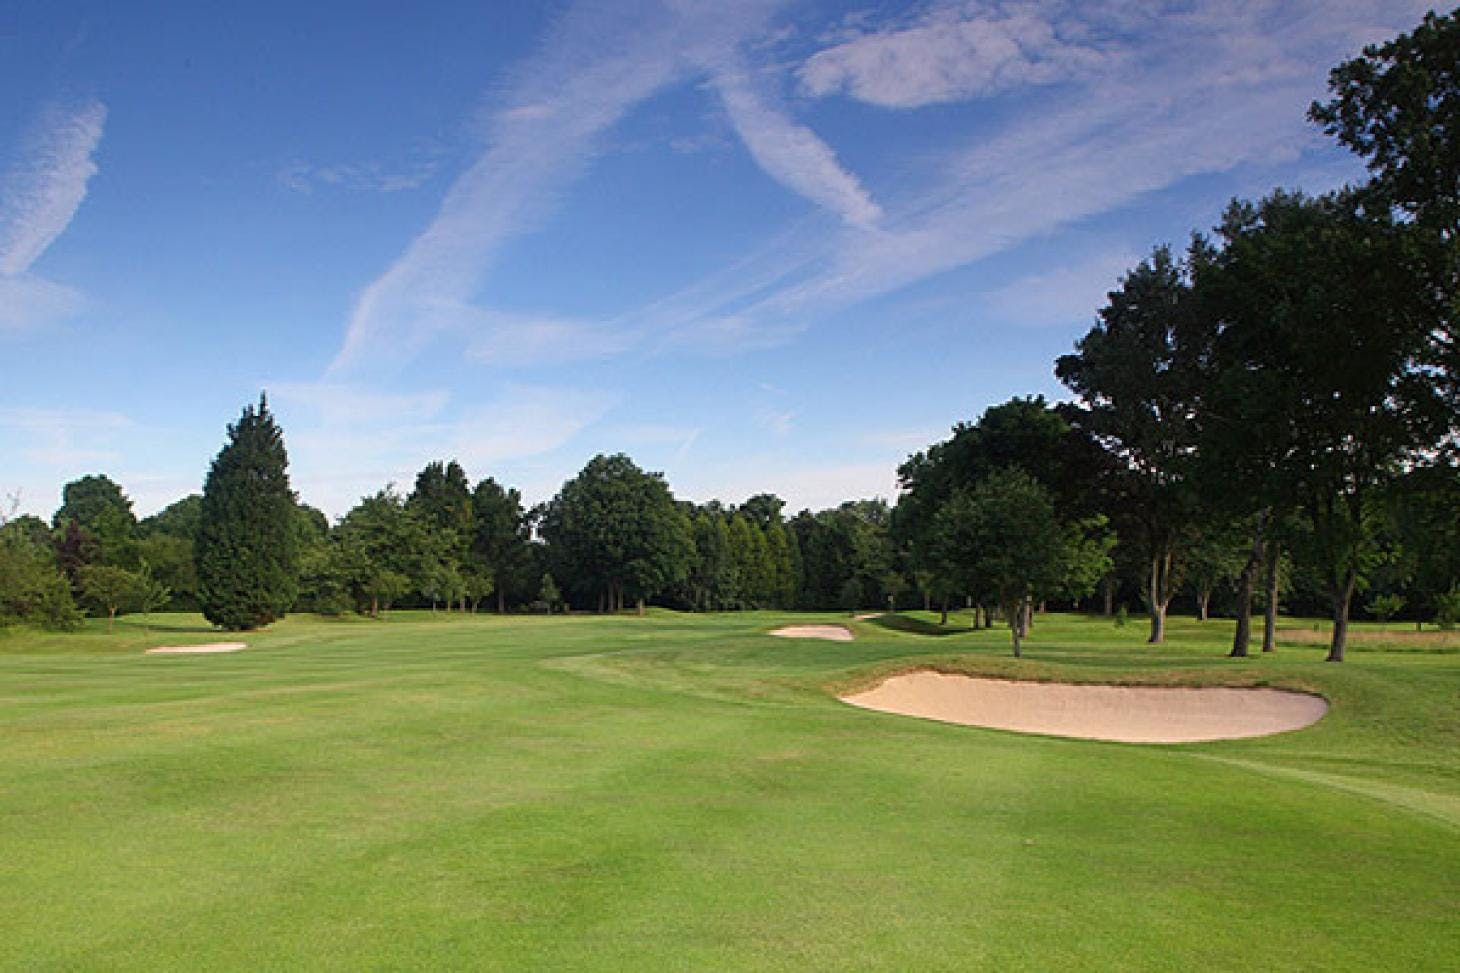 Cuddington Golf Club 18 hole golf course